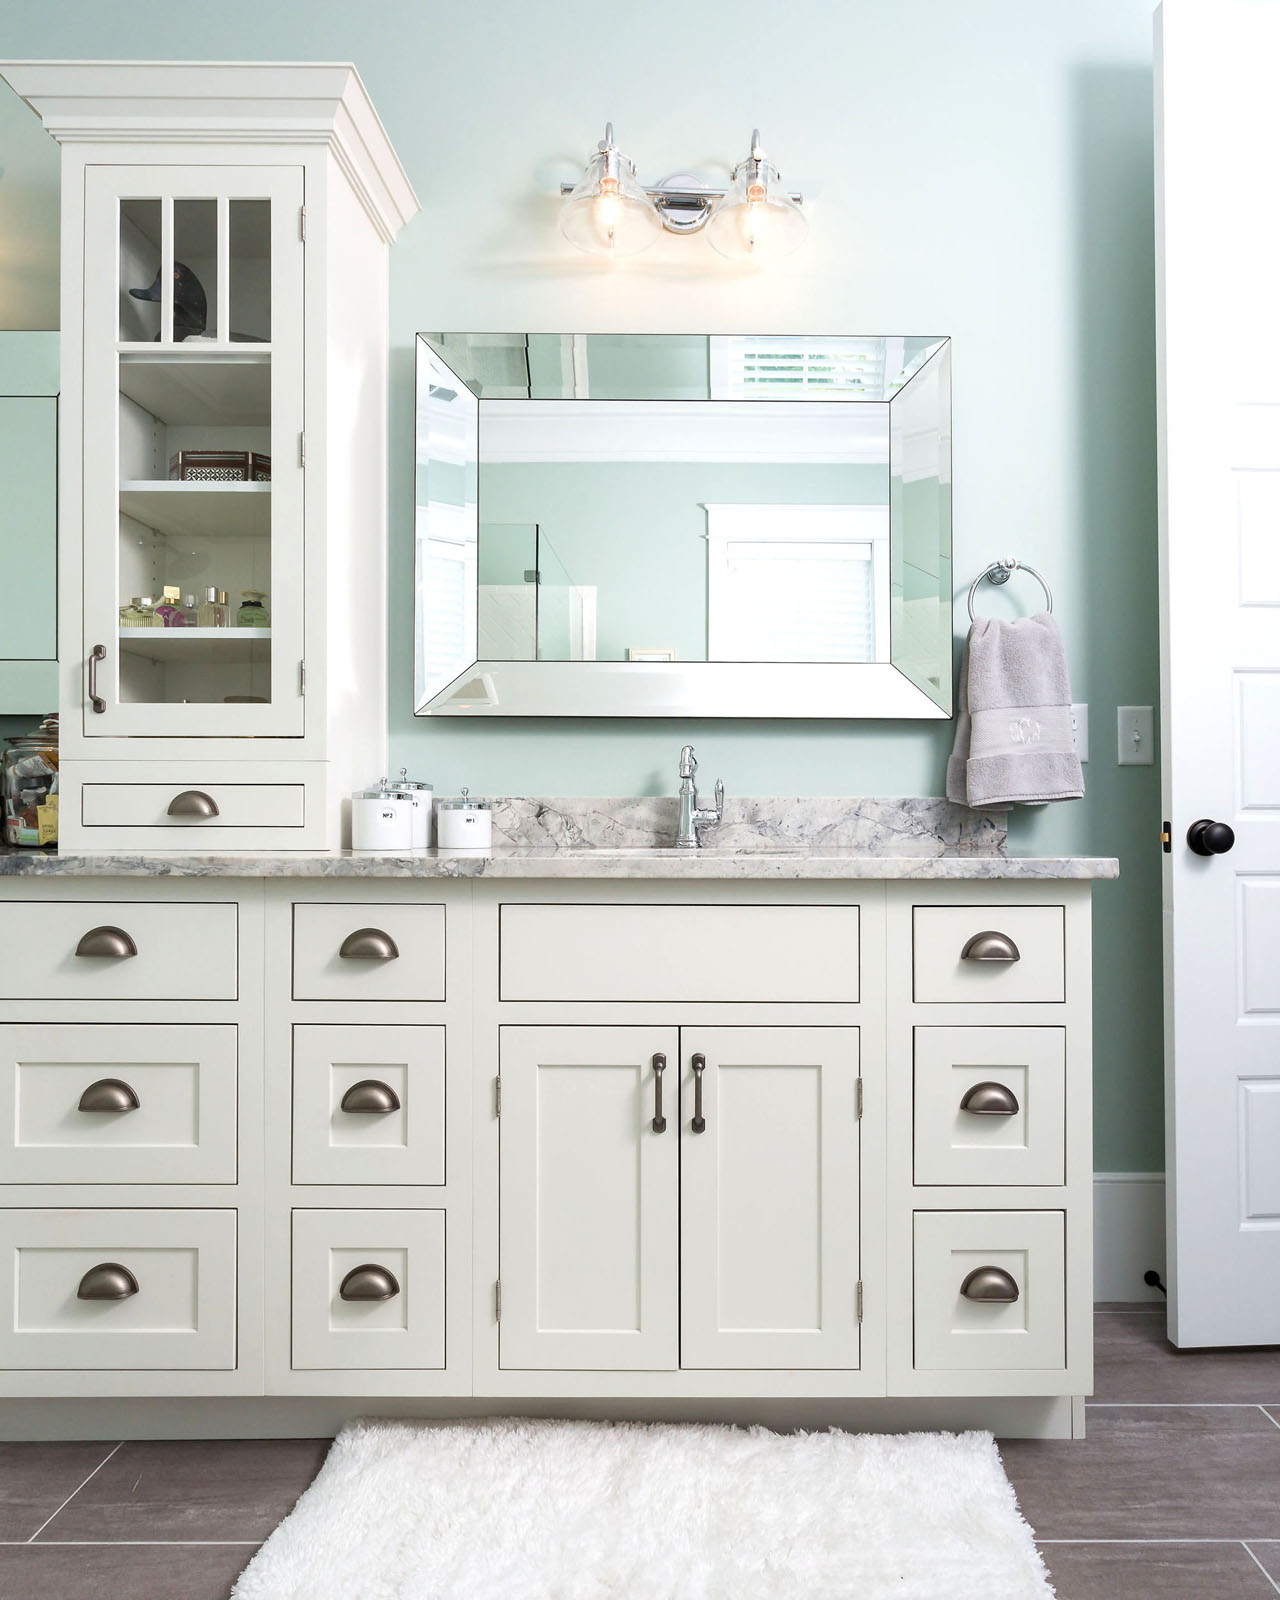 CliqStudios bath cabinets shown in Austin White door style and finish